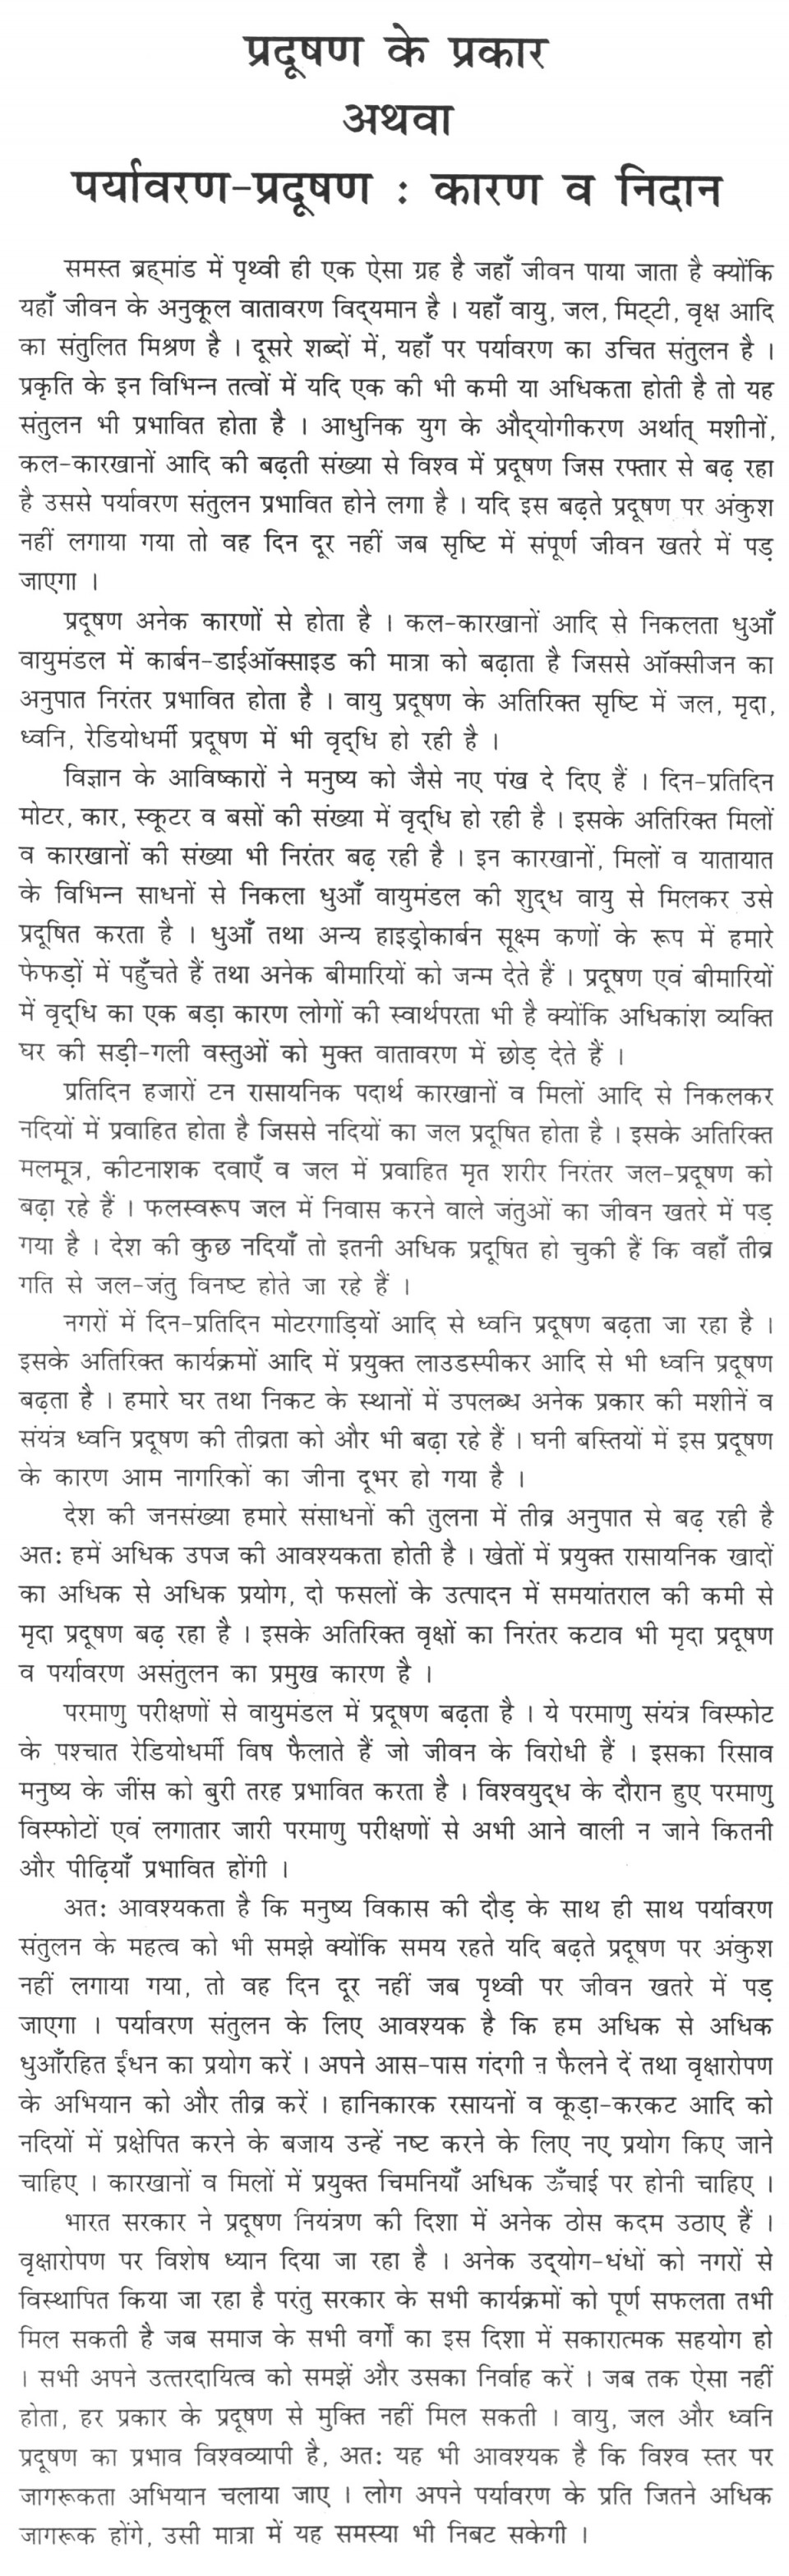 014 Good Habits Essay In Hindi Exceptional Food Wikipedia 960